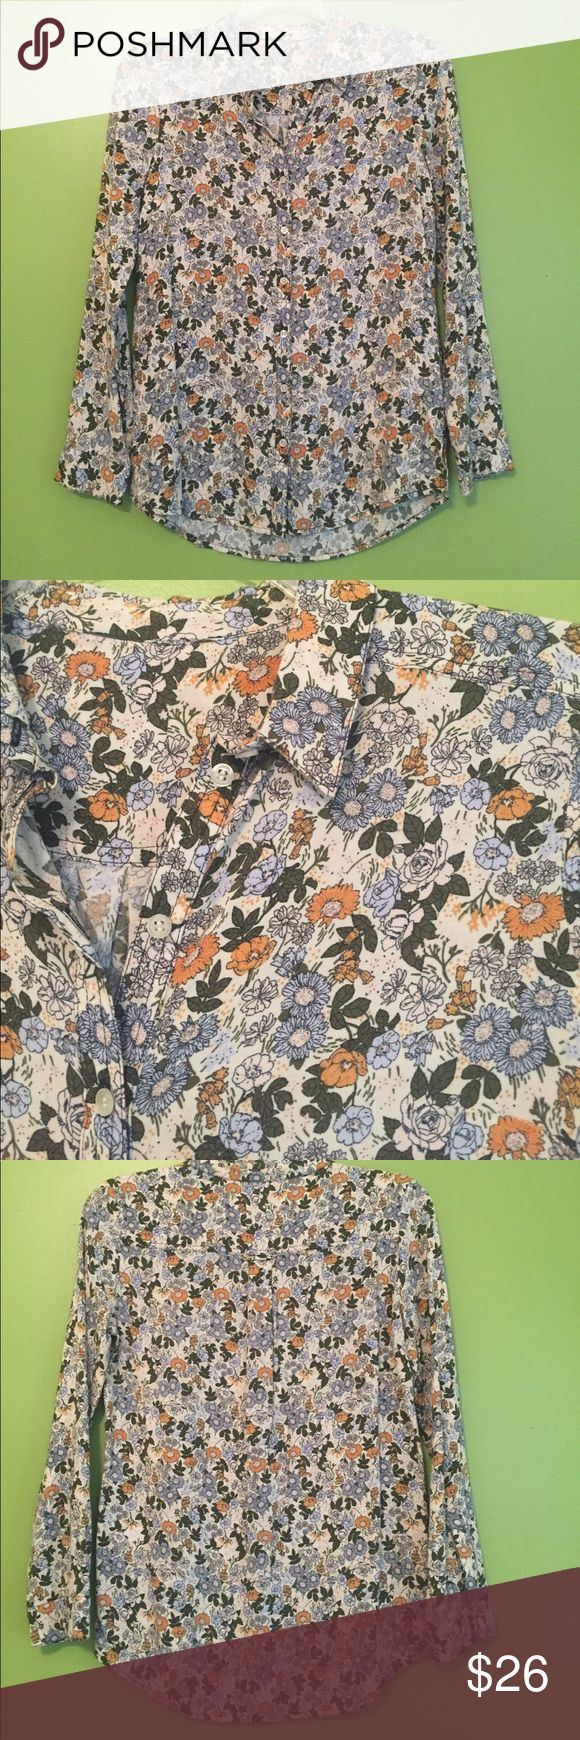 Flowered Henley shirt Bought at Anthropologie sample sale but it has no tags. Beautiful fabric great for a Saturday around town. Wonderful condition. Anthropologie Tops Blouses